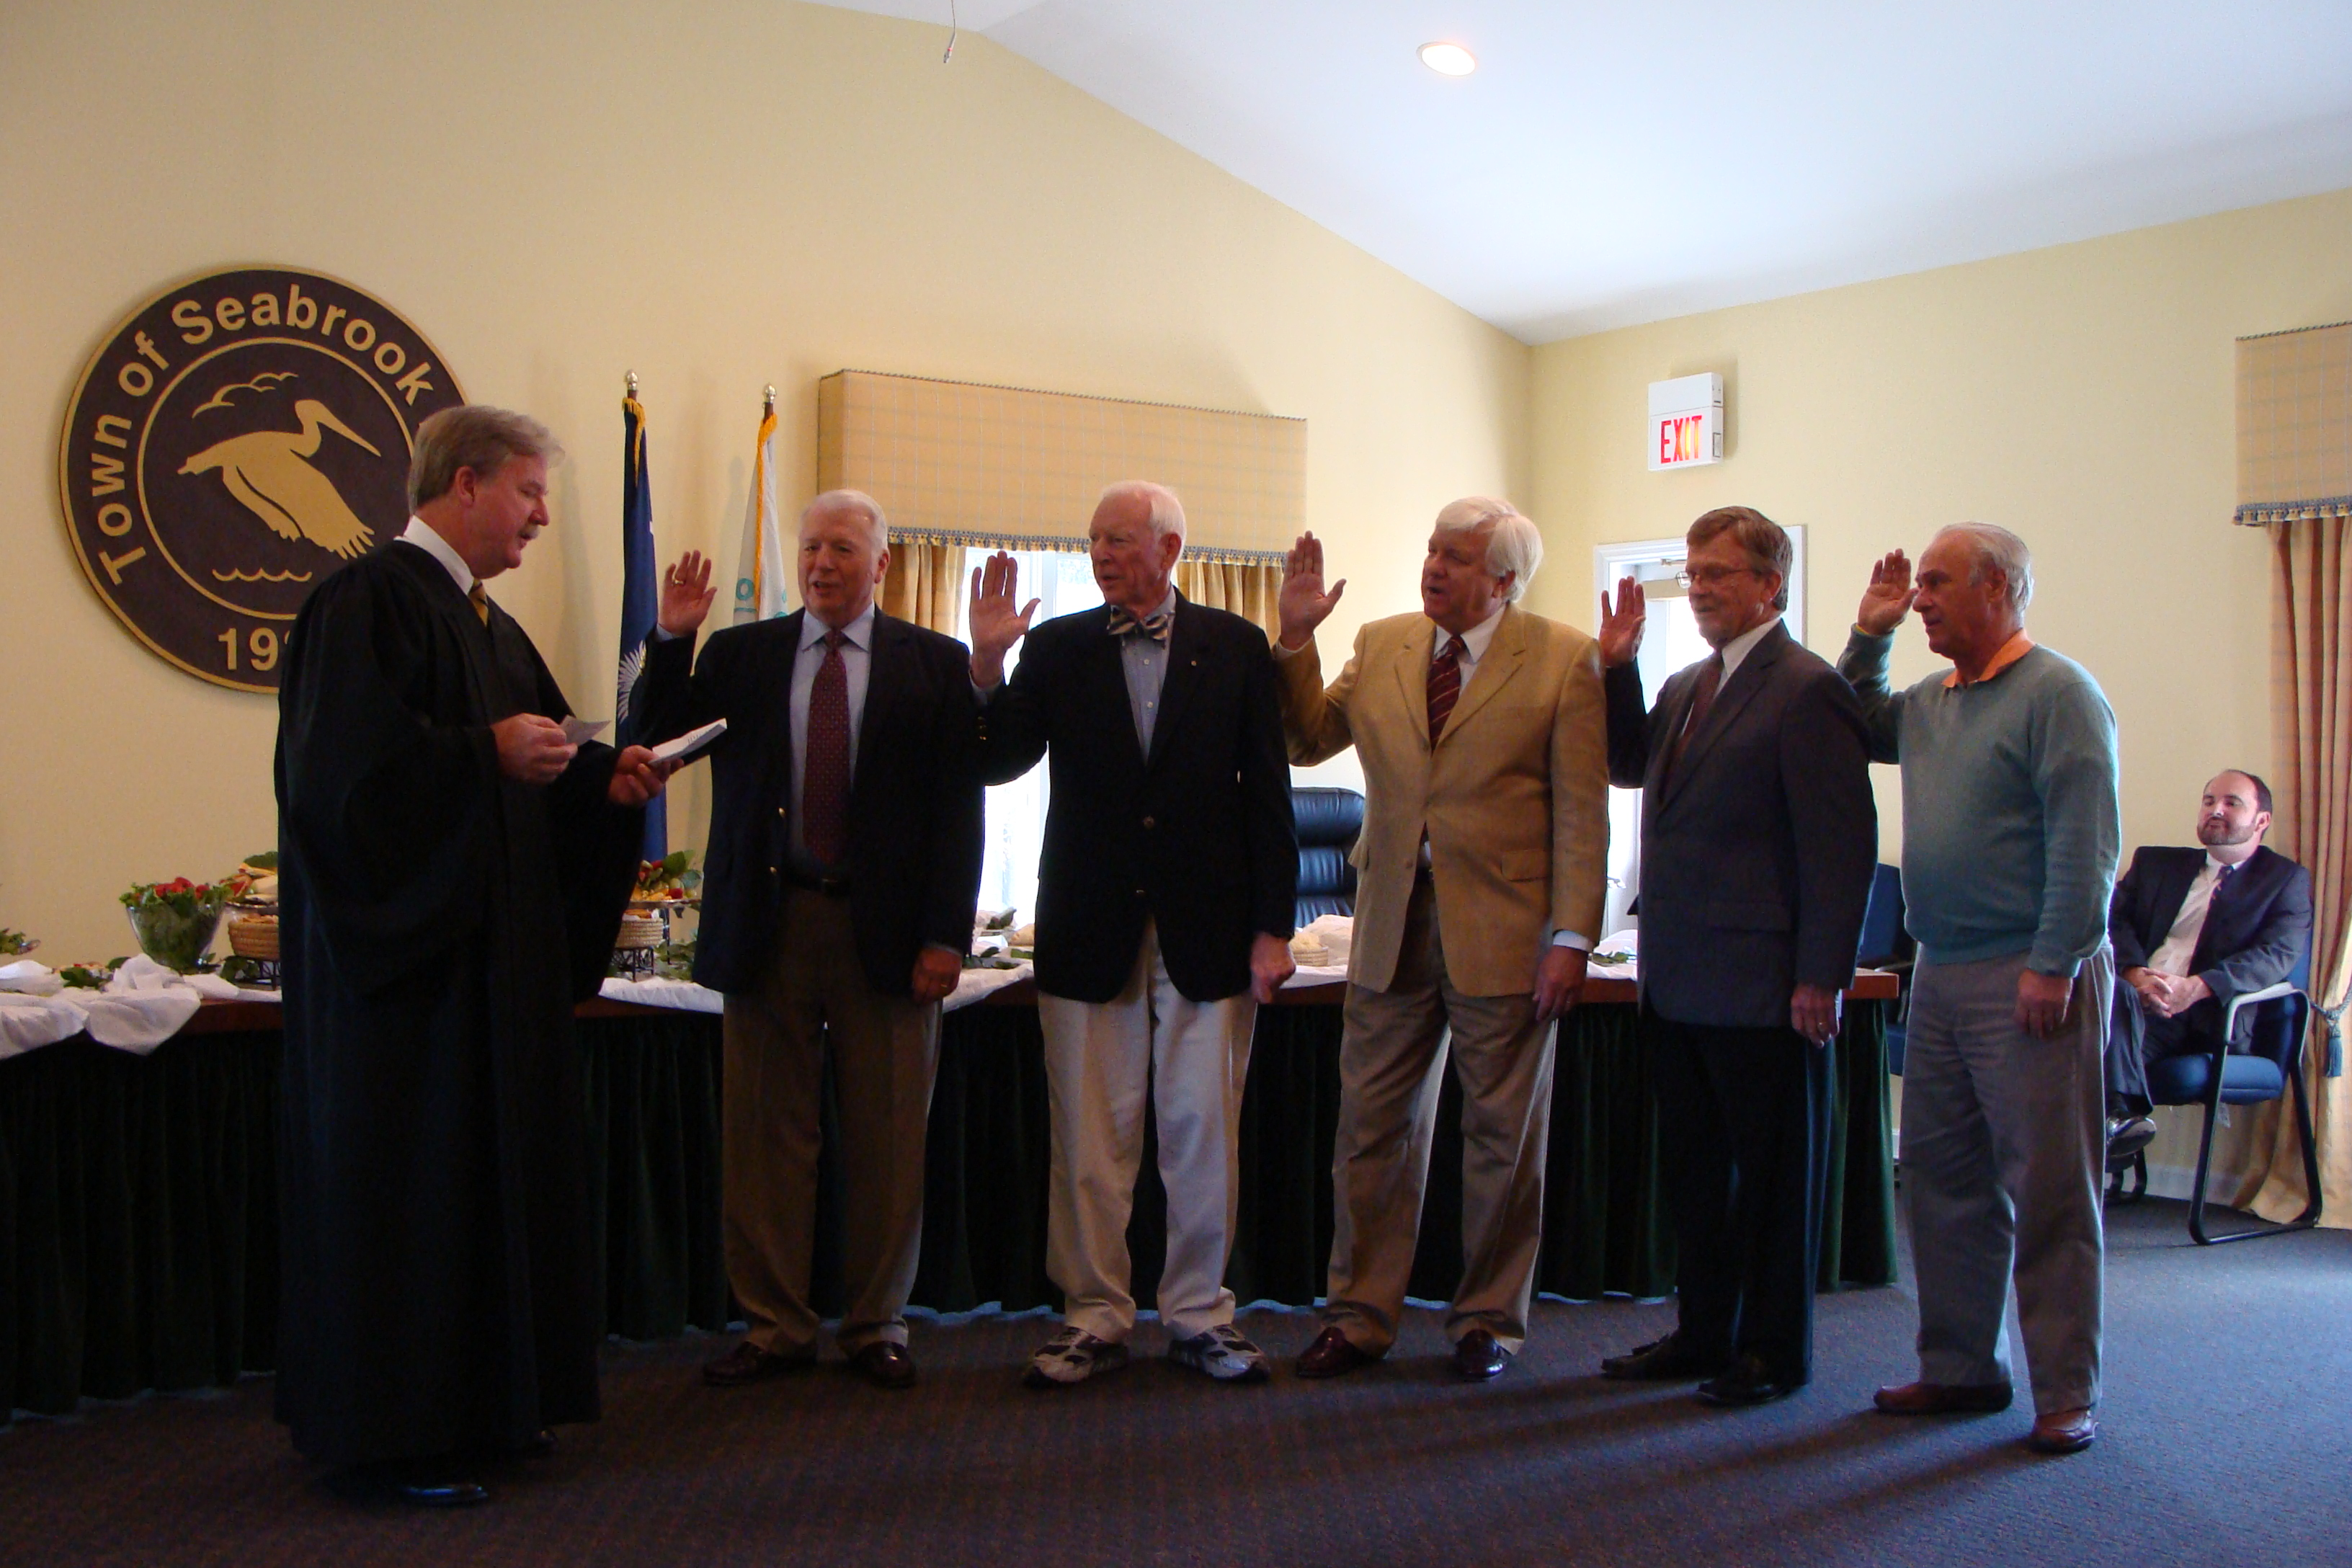 Judge O'Neil swears in the new Seabrook Island Town Council.